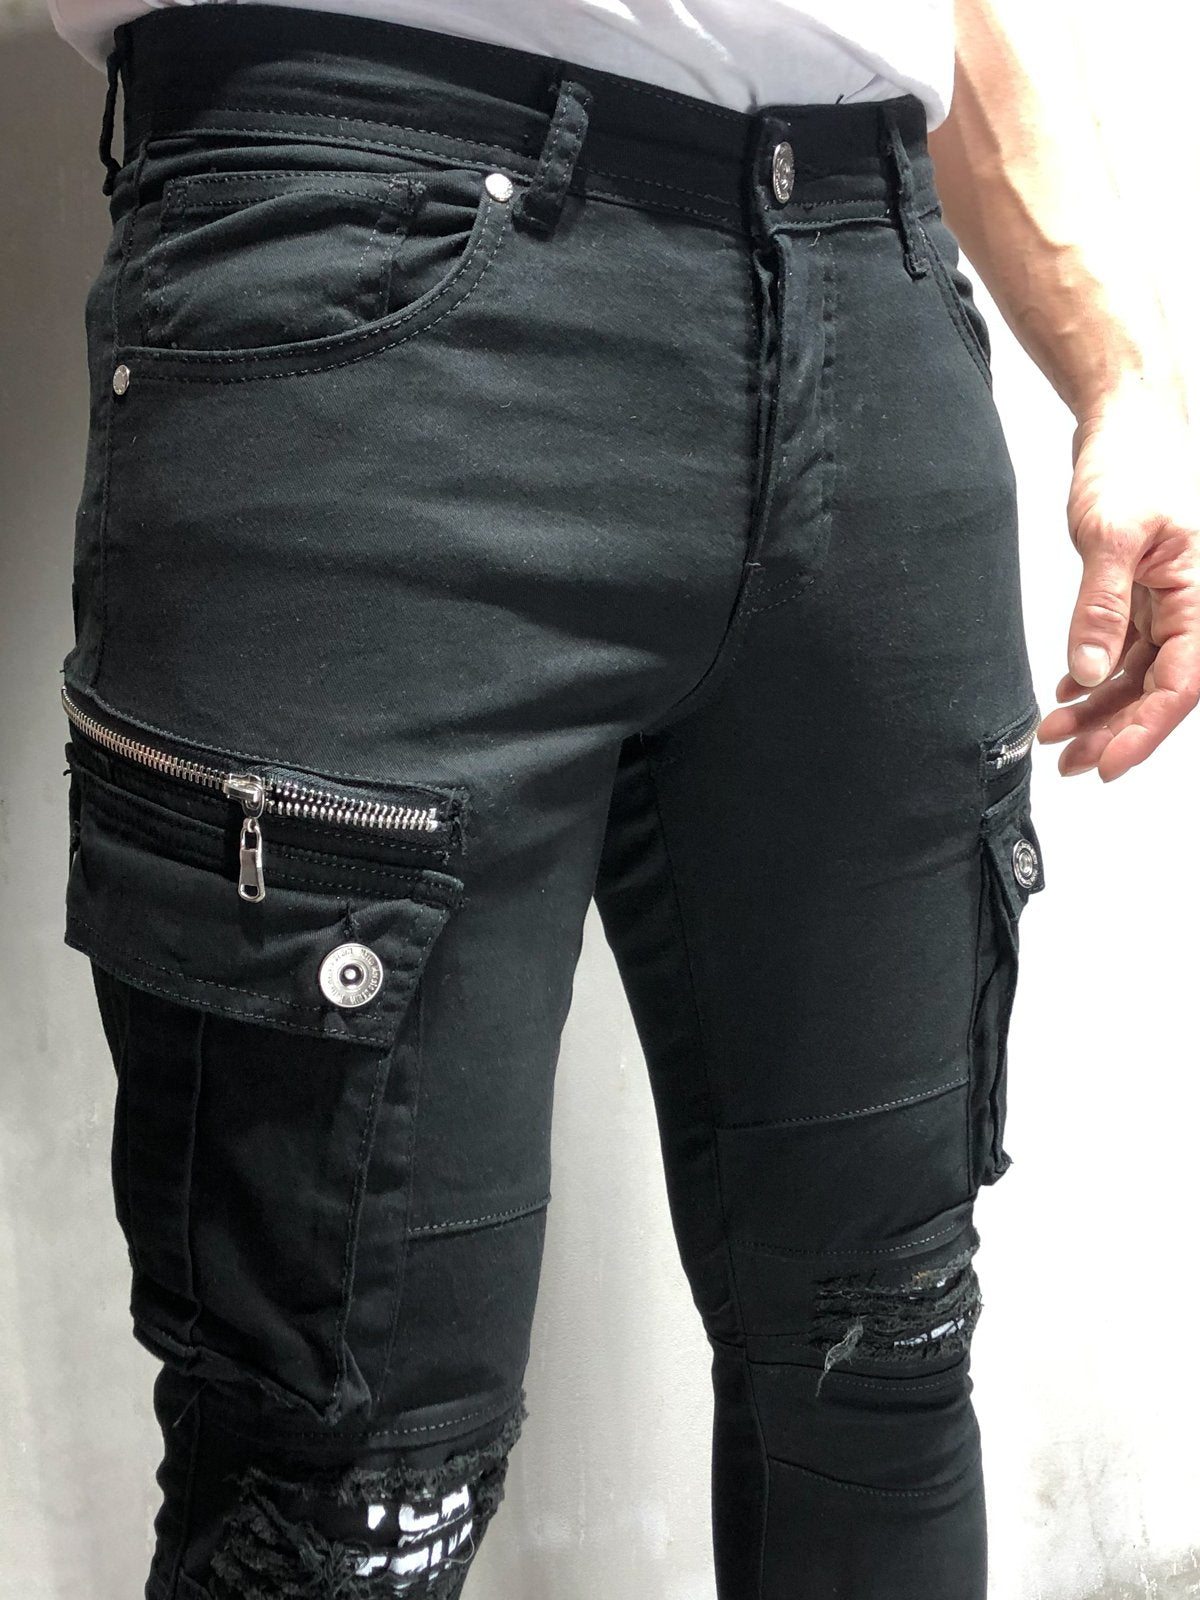 Black Cargo Jeans Ripped&Repaired Knee 4195